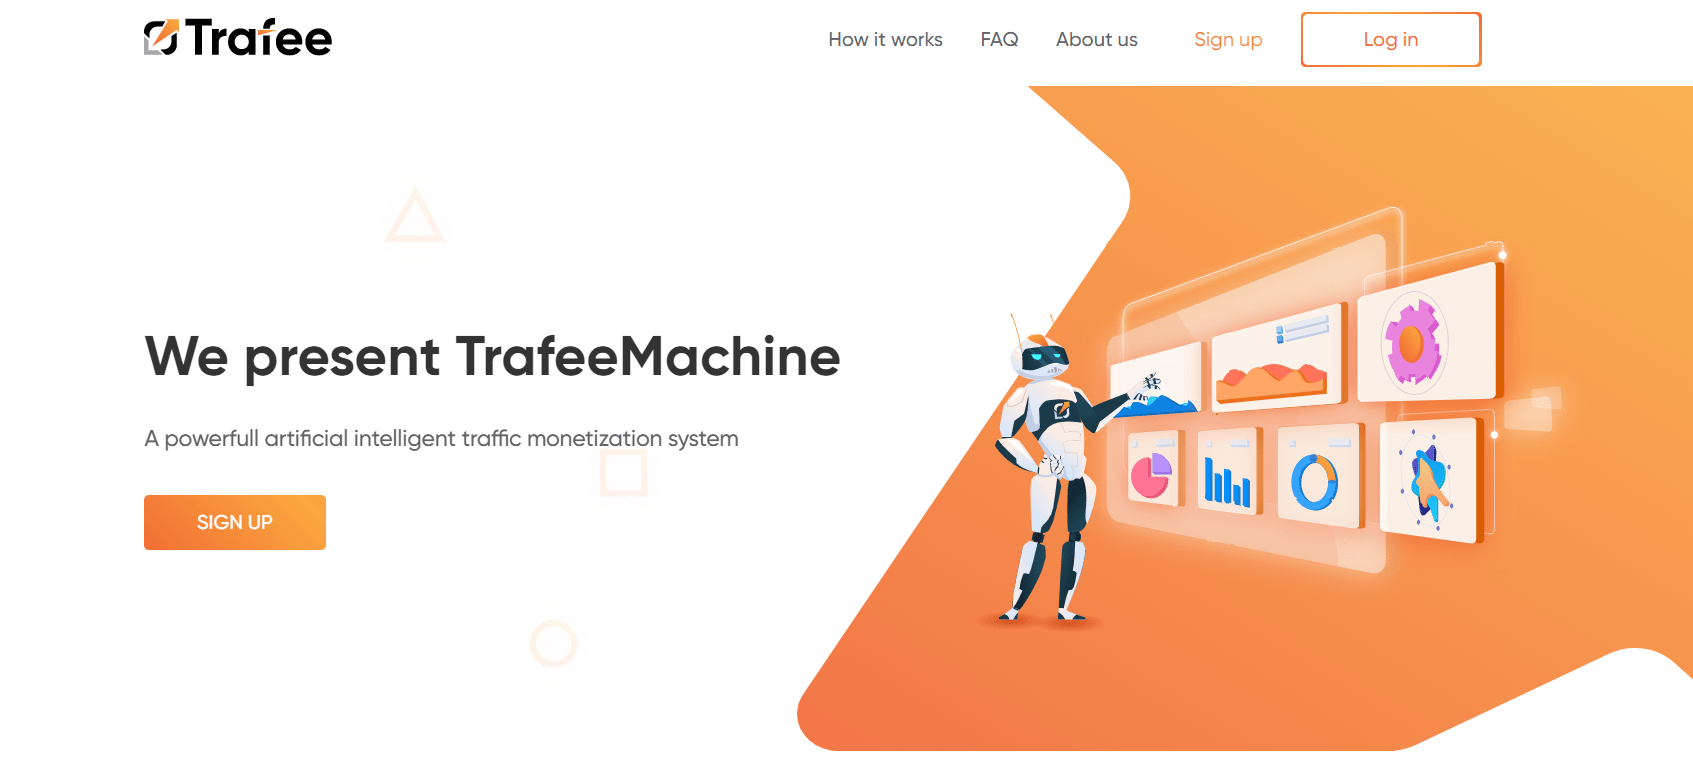 Trafee Overview- Trafee review